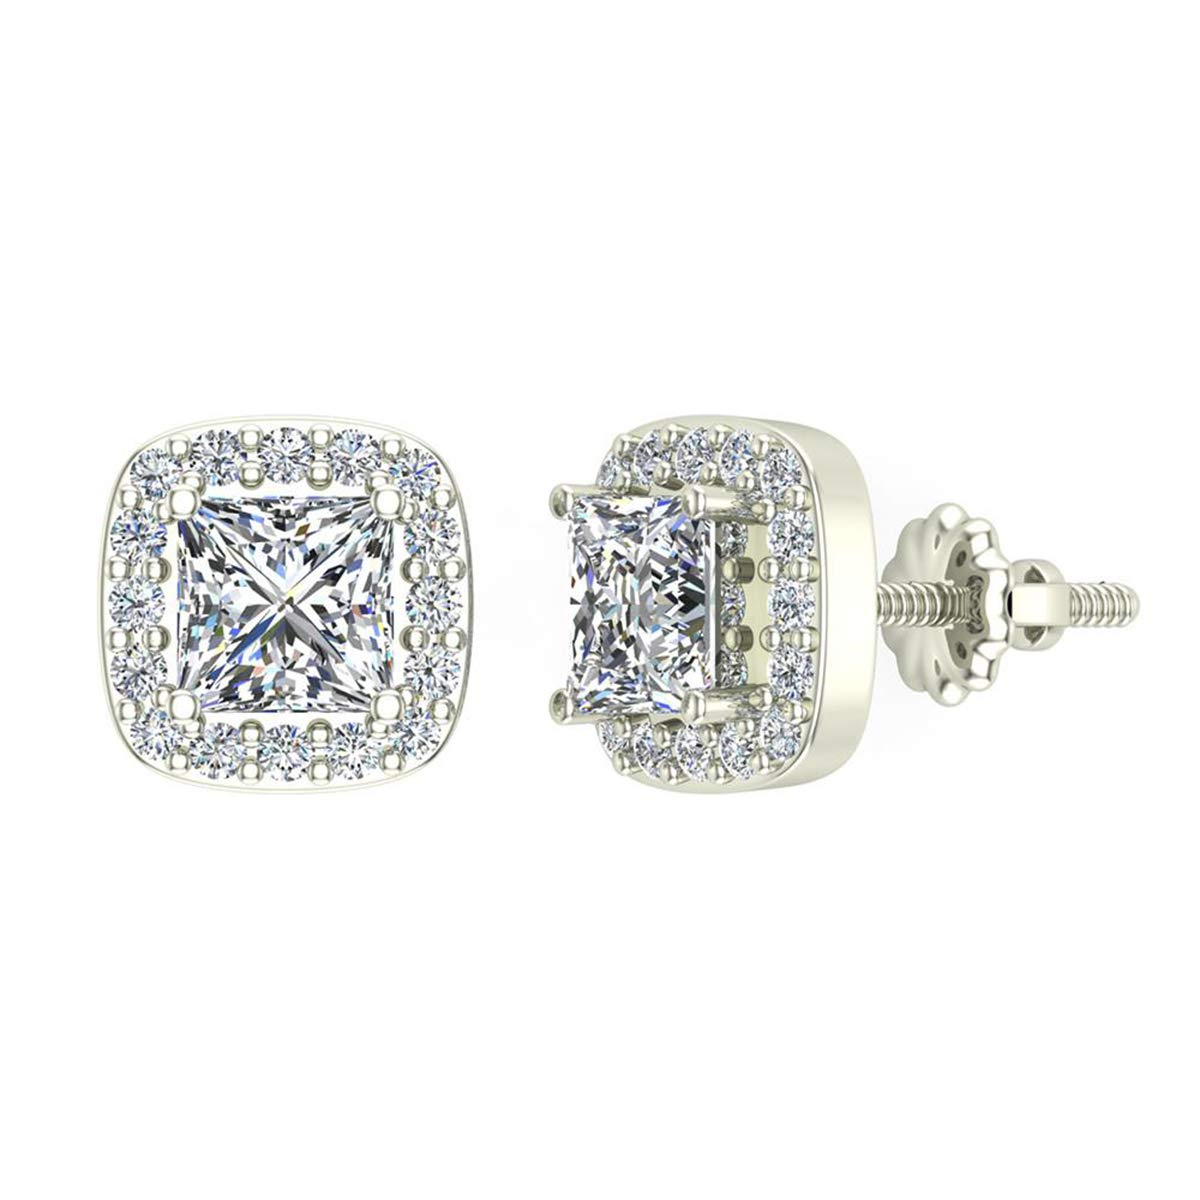 1.30 Ct Princess cut Cushion Style Halo Simulated Diamond Stud Earrings 14K White Gold Over